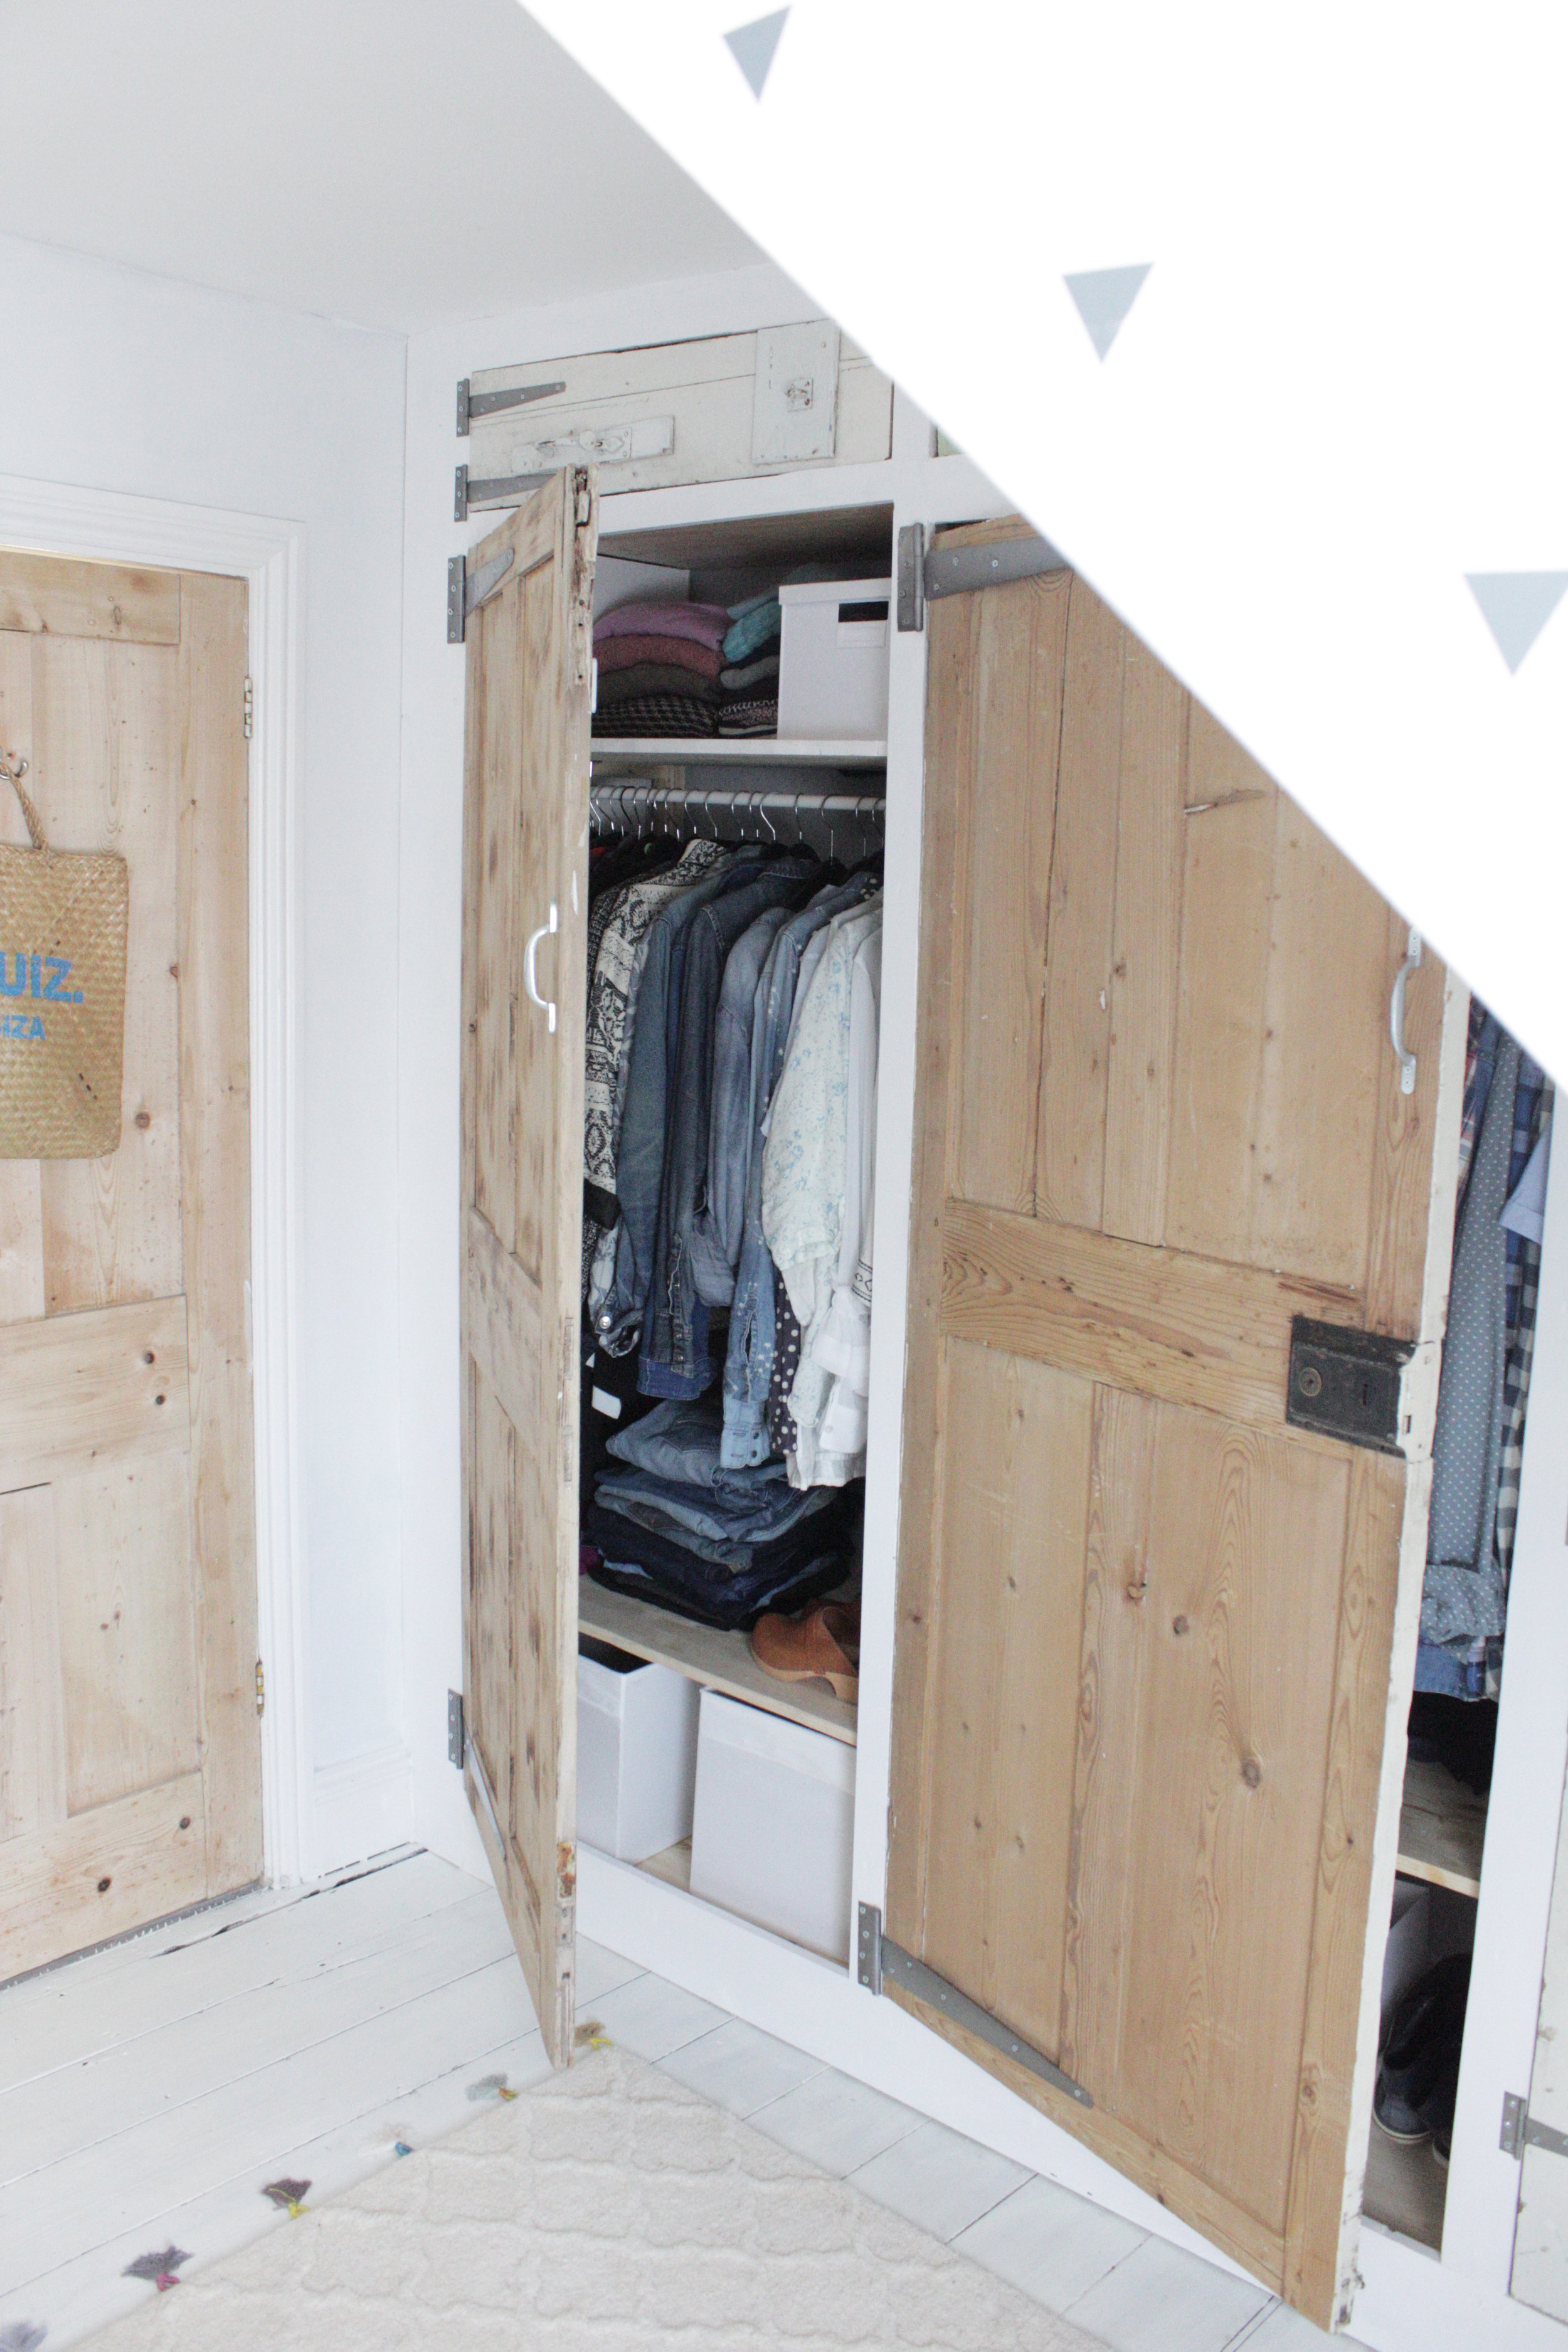 Build your own wardrobe using an Ikea Ivar base and reclaimed doors, tutorial by hester's Handmade Home